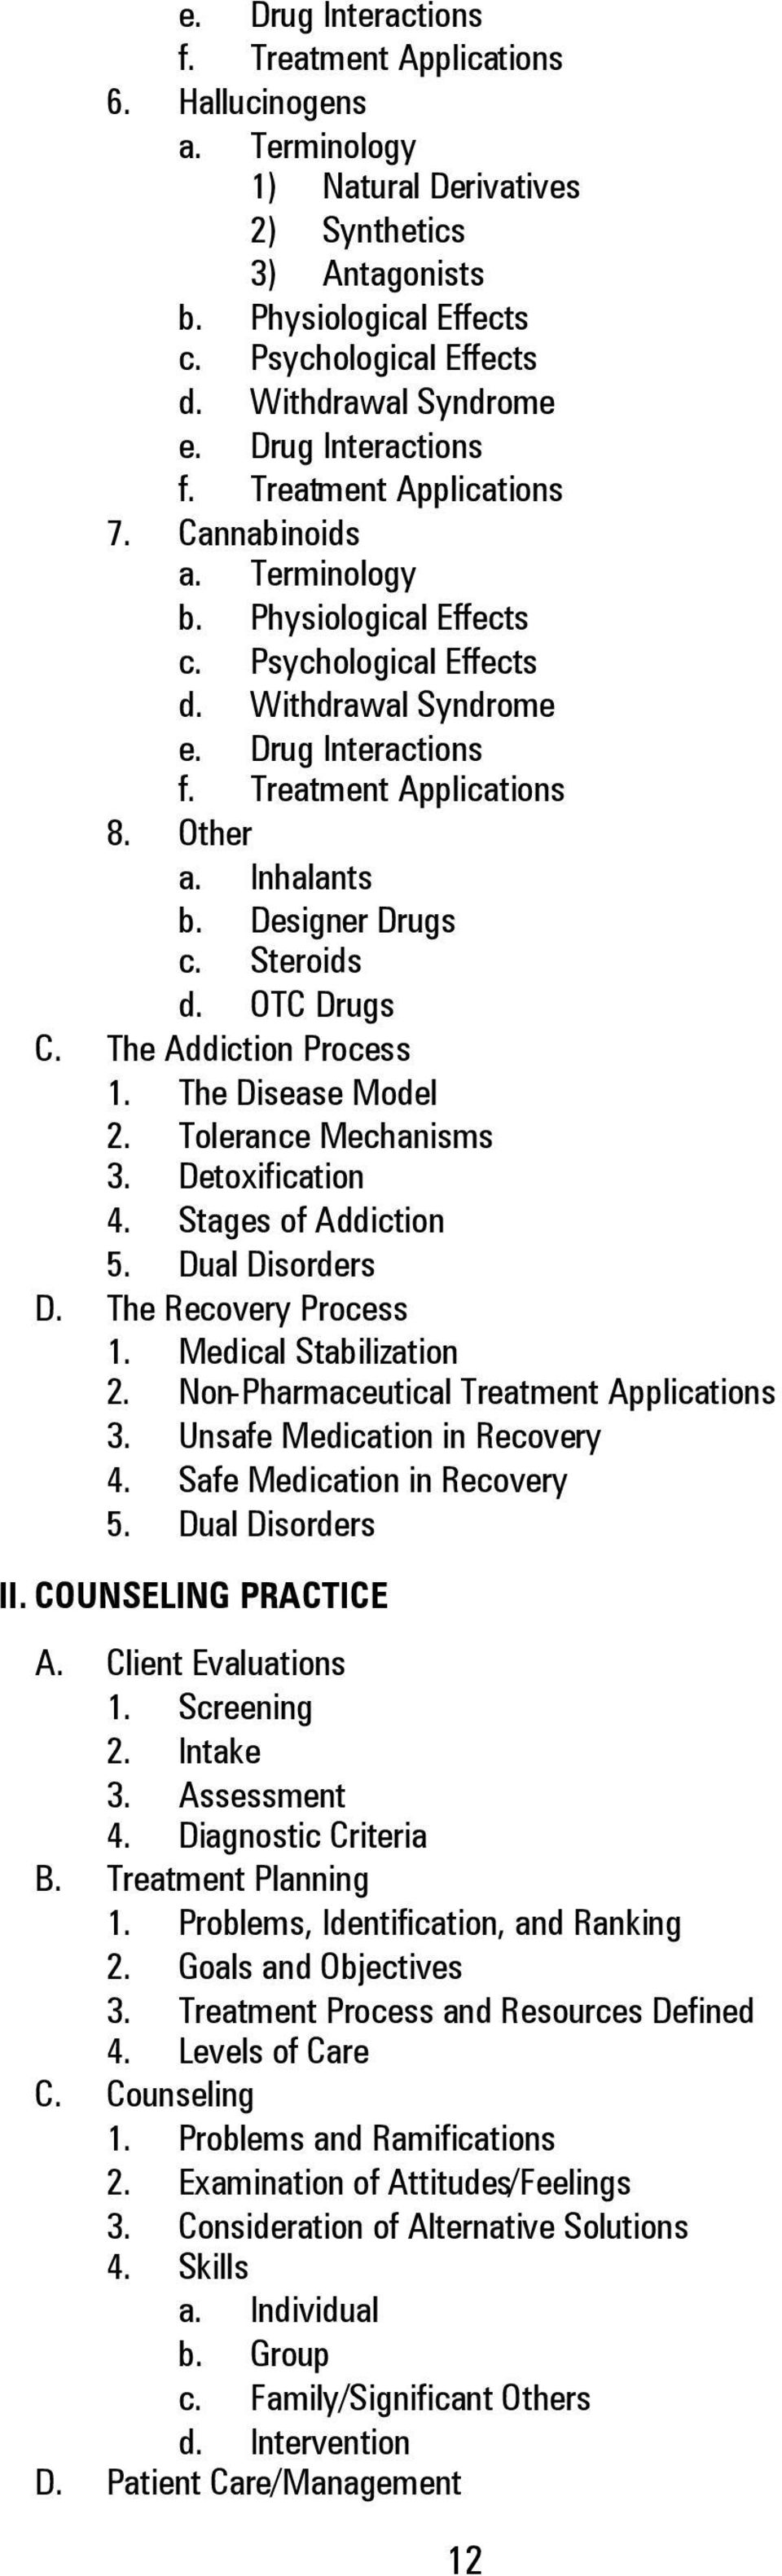 Other a. Inhalants b. Designer Drugs c. Steroids d. OTC Drugs C. The Addiction Process 1. The Disease Model 2. Tolerance Mechanisms 3. Detoxification 4. Stages of Addiction 5. Dual Disorders D.